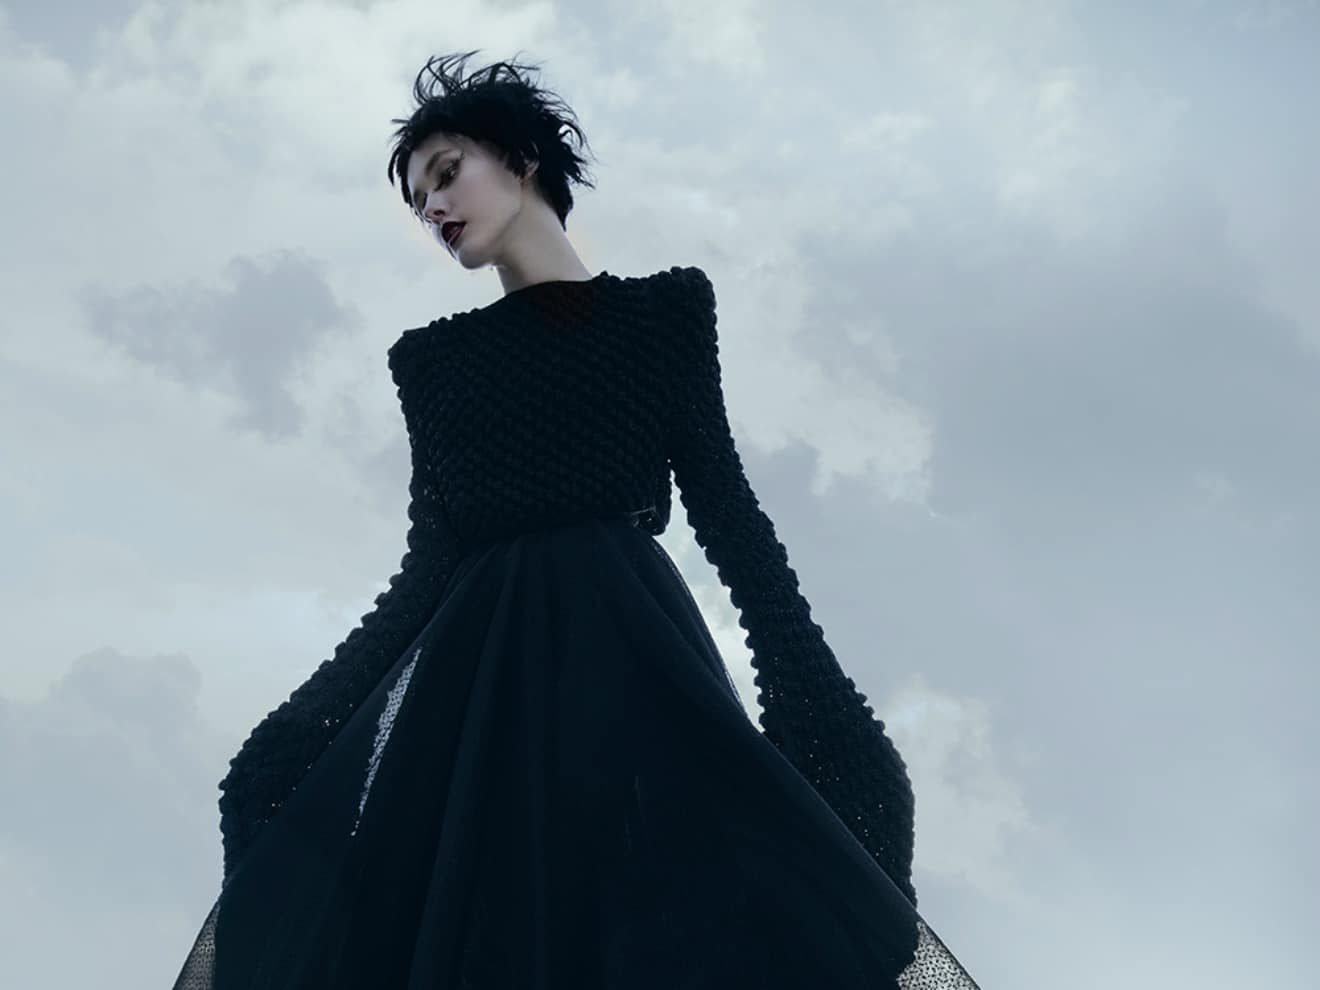 The beautiful authenticity of mainstream gothic